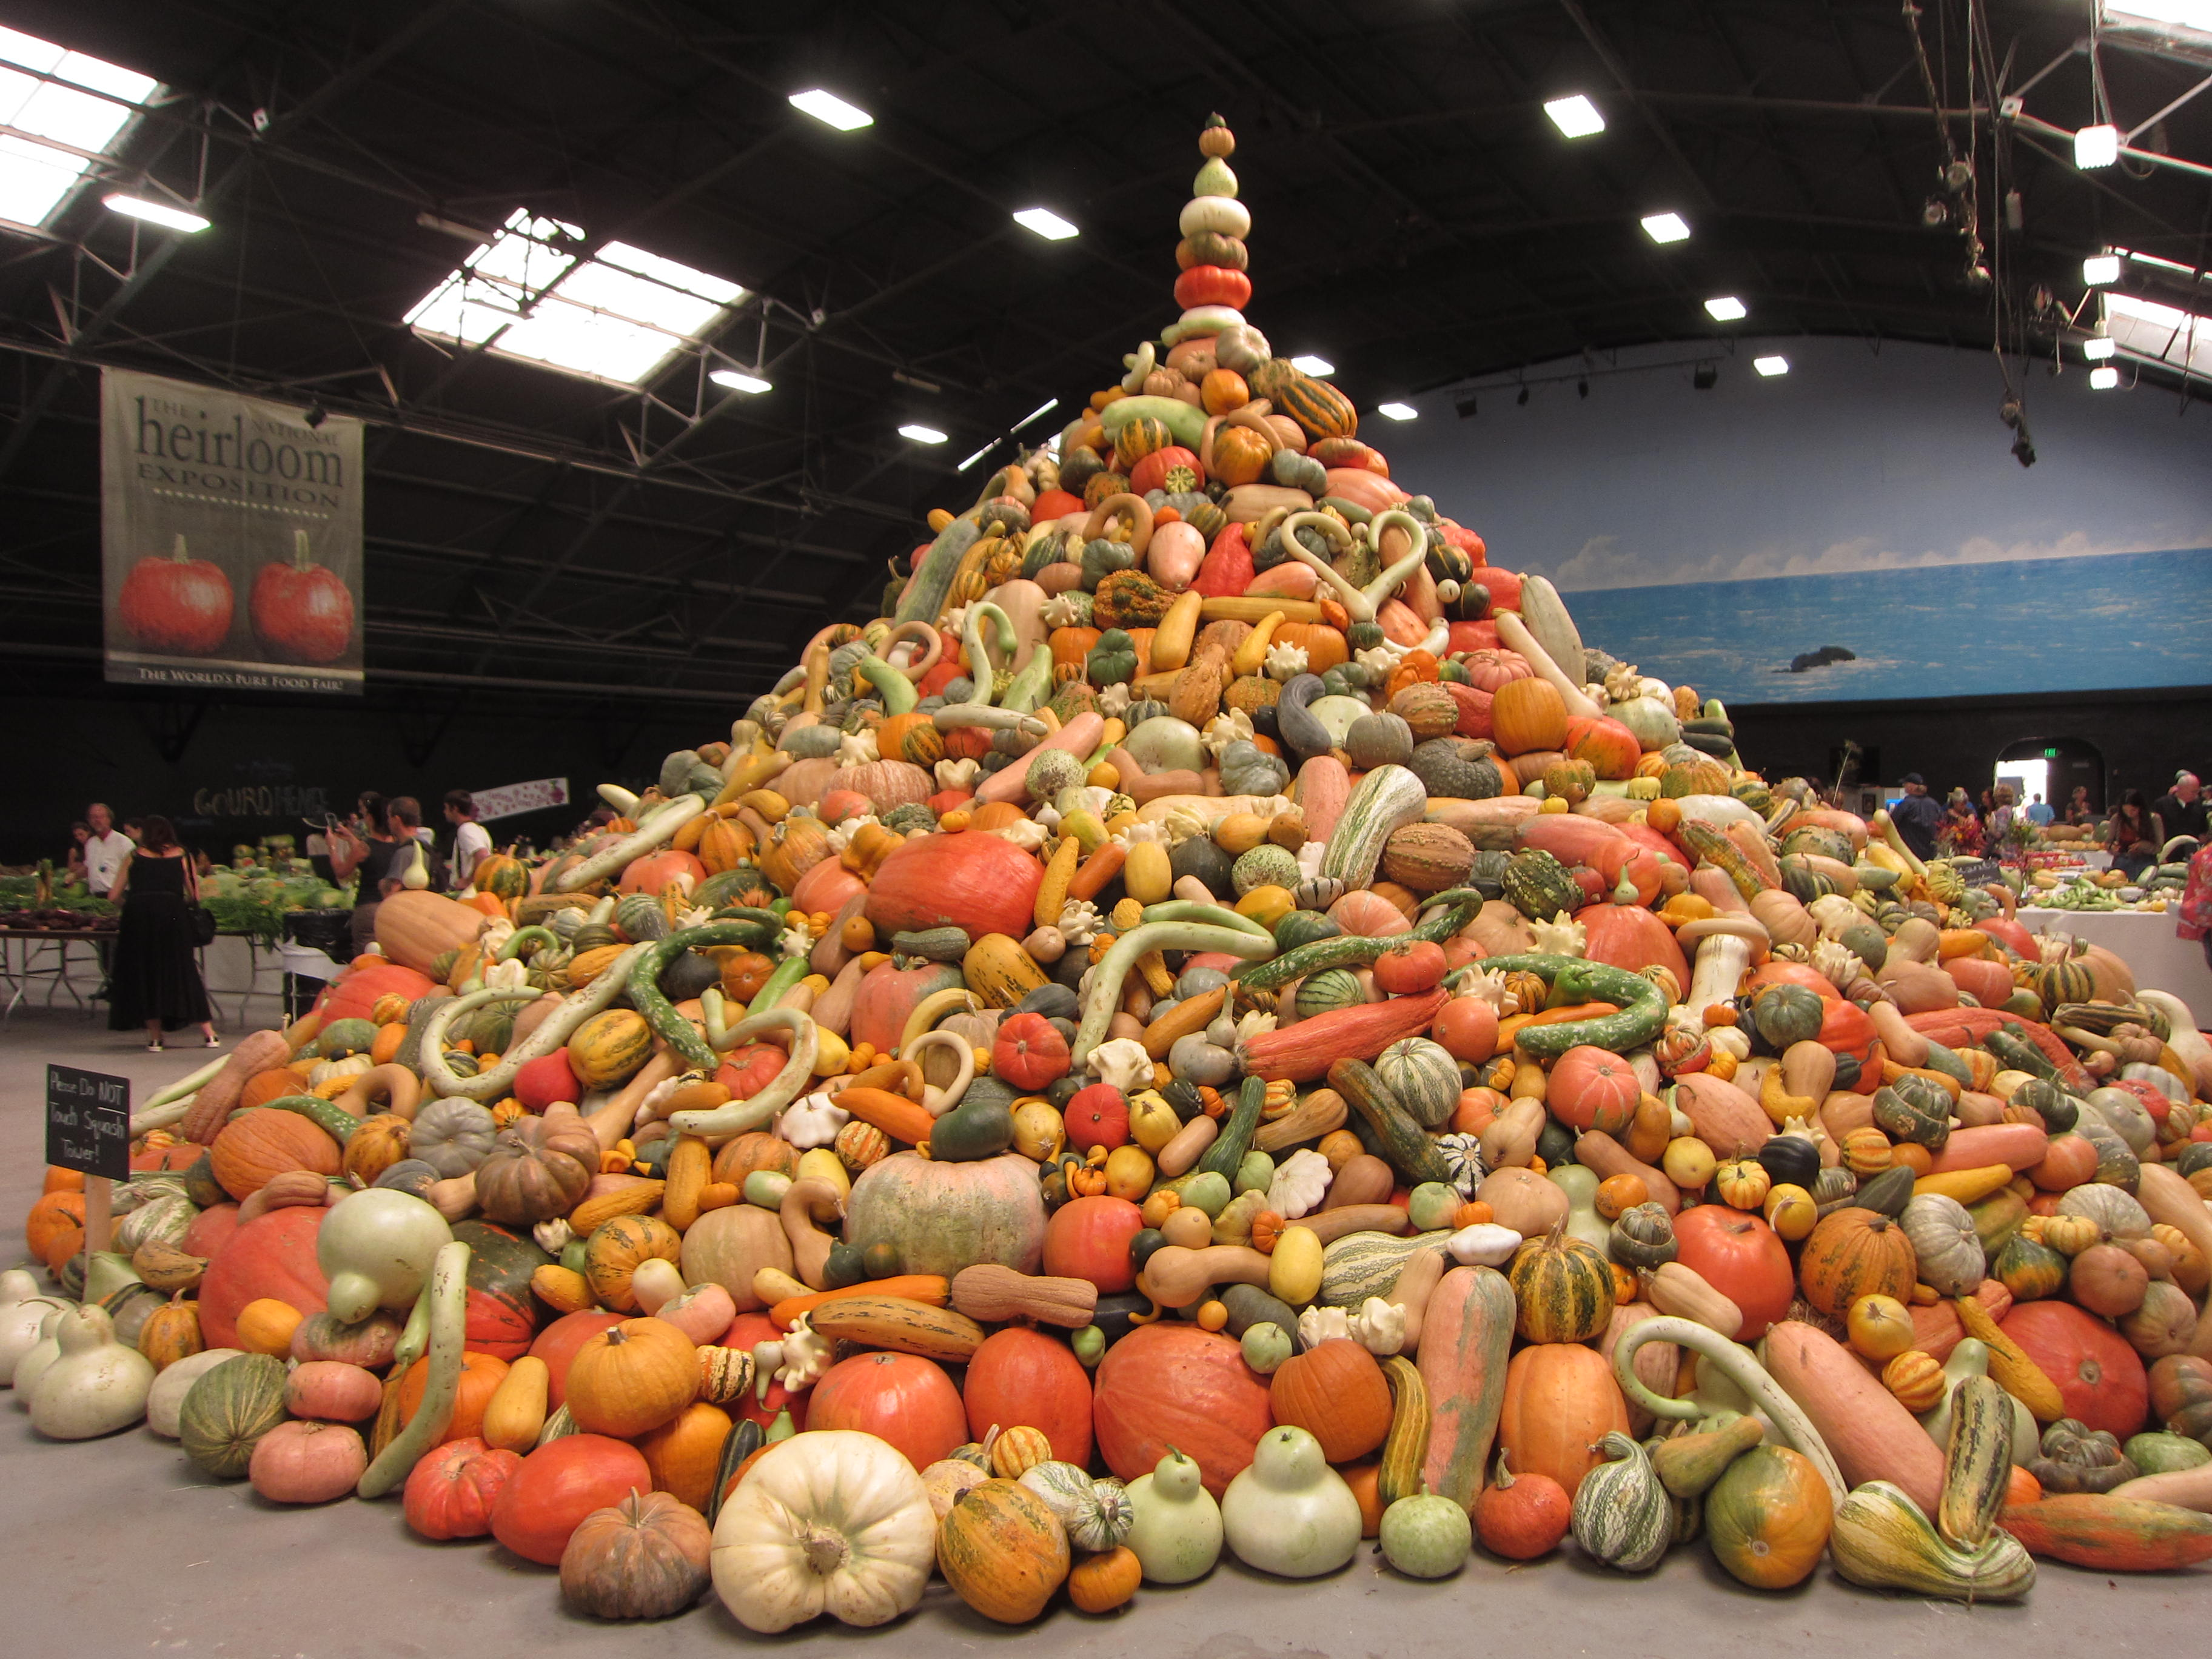 Tower of Squash Heirloom Expo